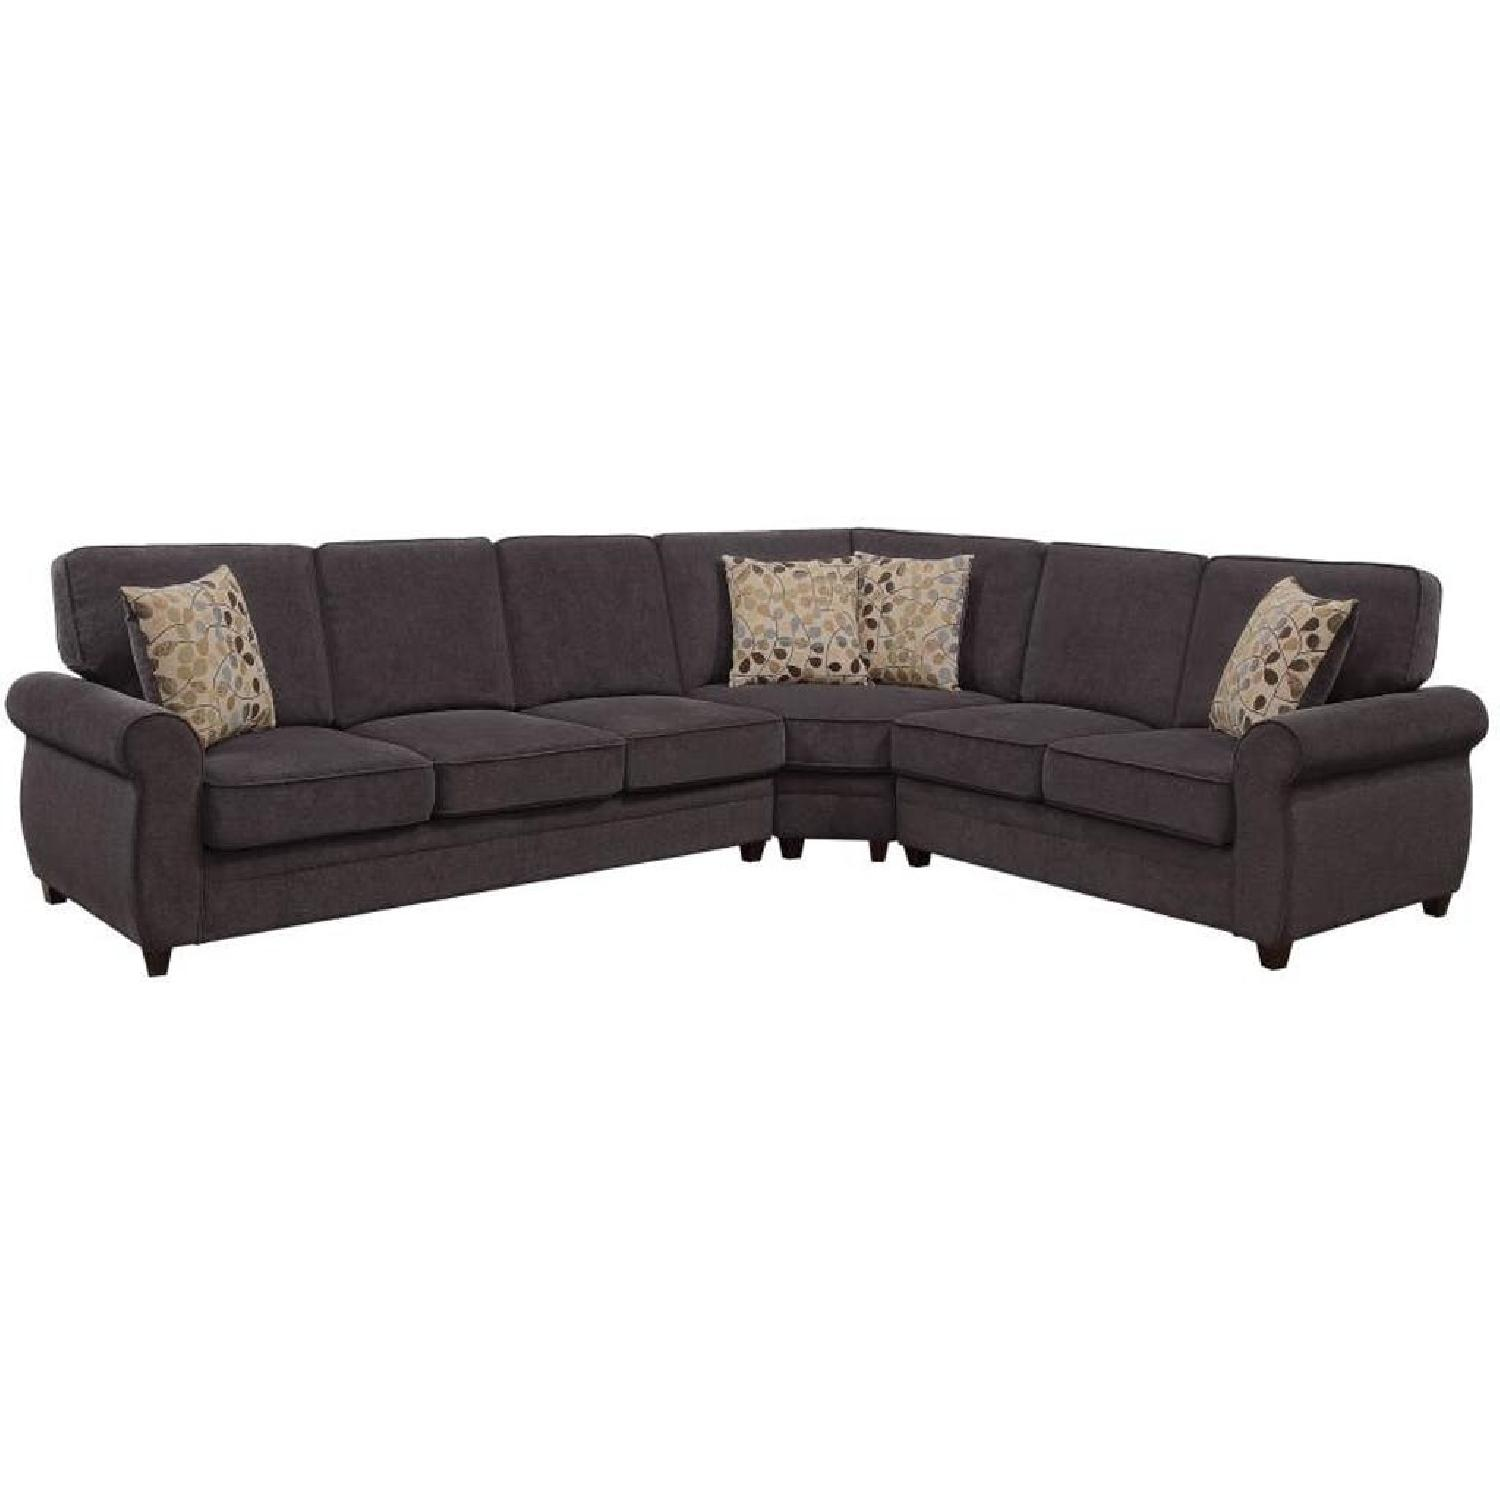 Attractive Sleeper Sectional Sofa In Brown Fabric W/ Memory Foam Pad ...